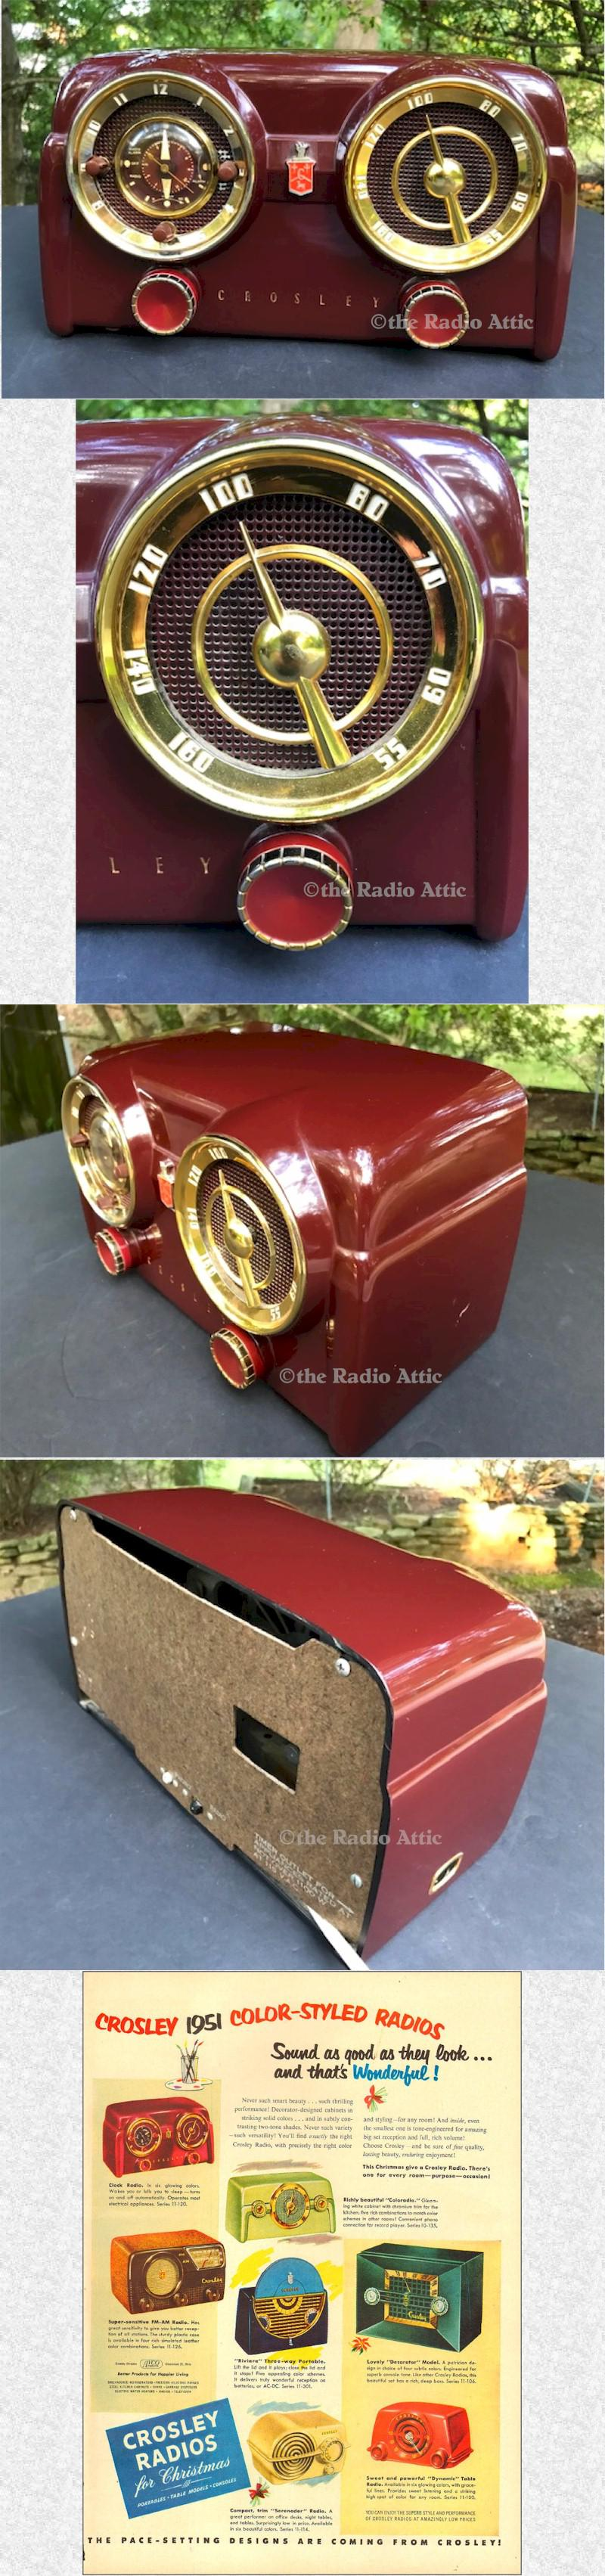 Crosley D-25 MN Clock Radio (1953)